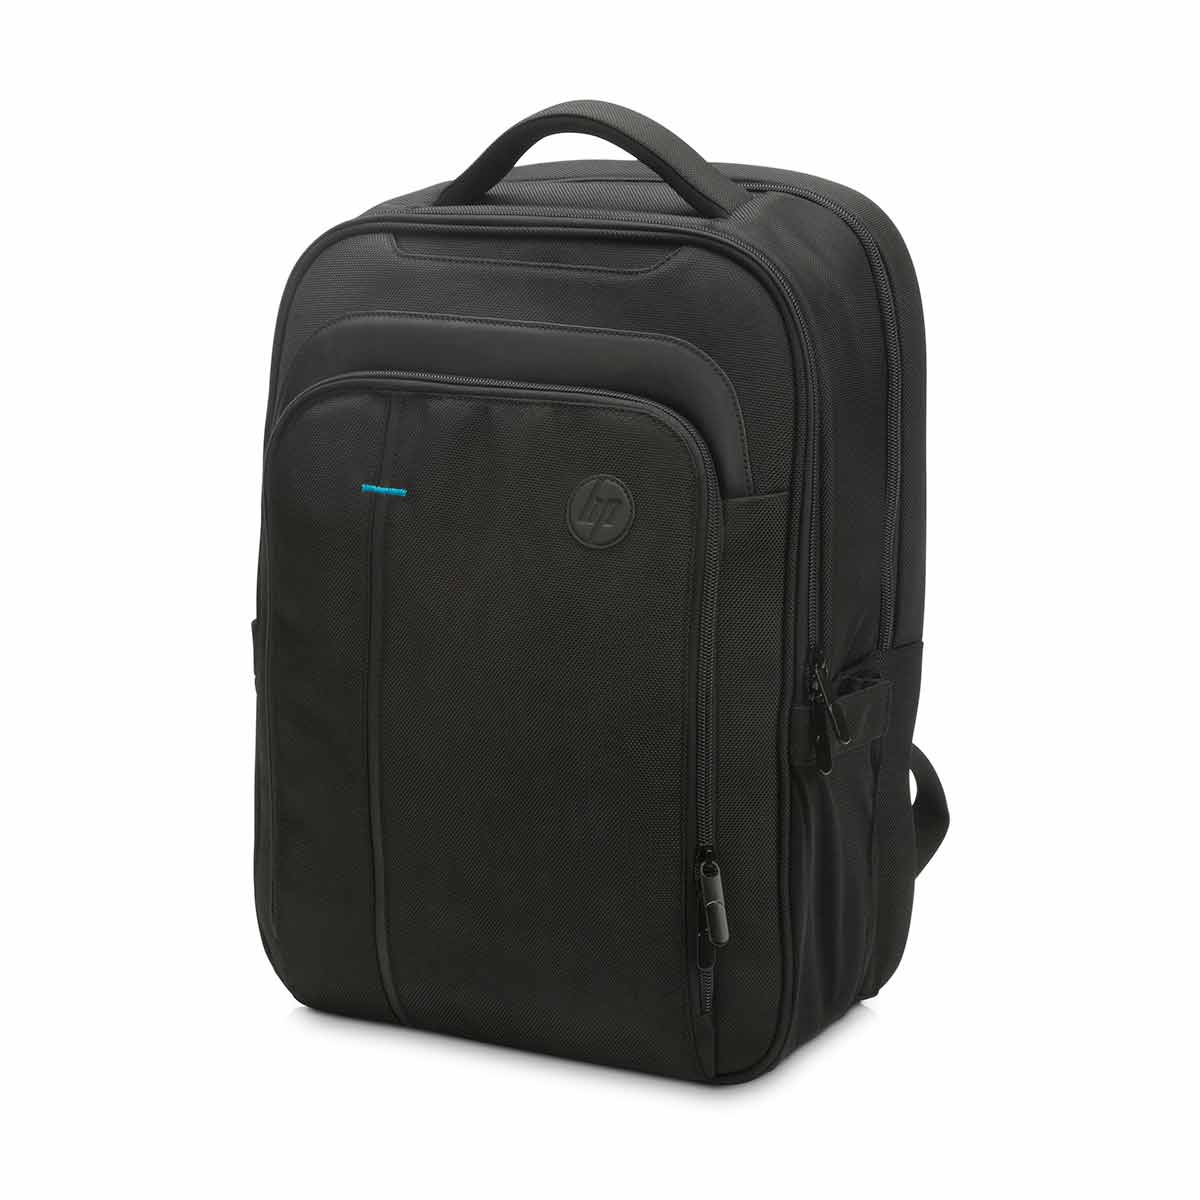 Image of HP Legend Topload Laptop Backpack 15.6 Inch, Black